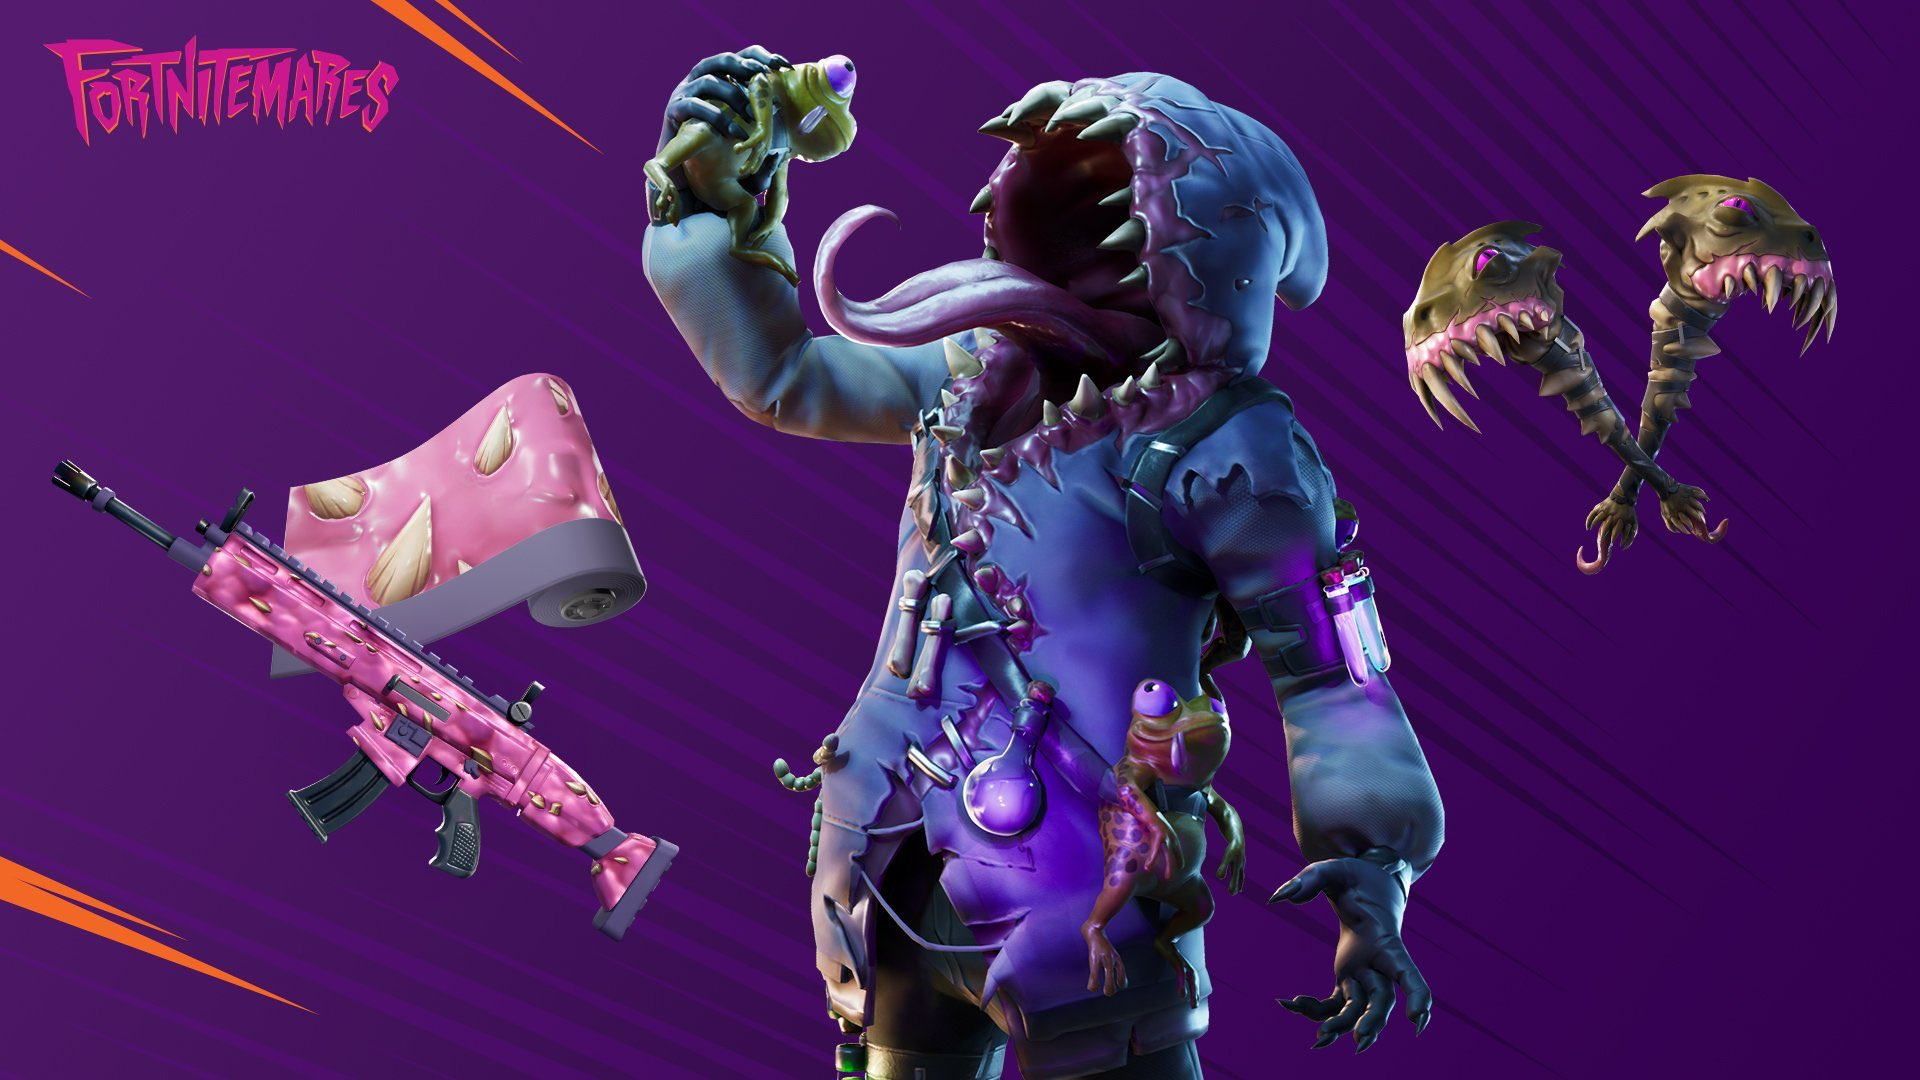 A Fortnite skin of a big mouthed monster